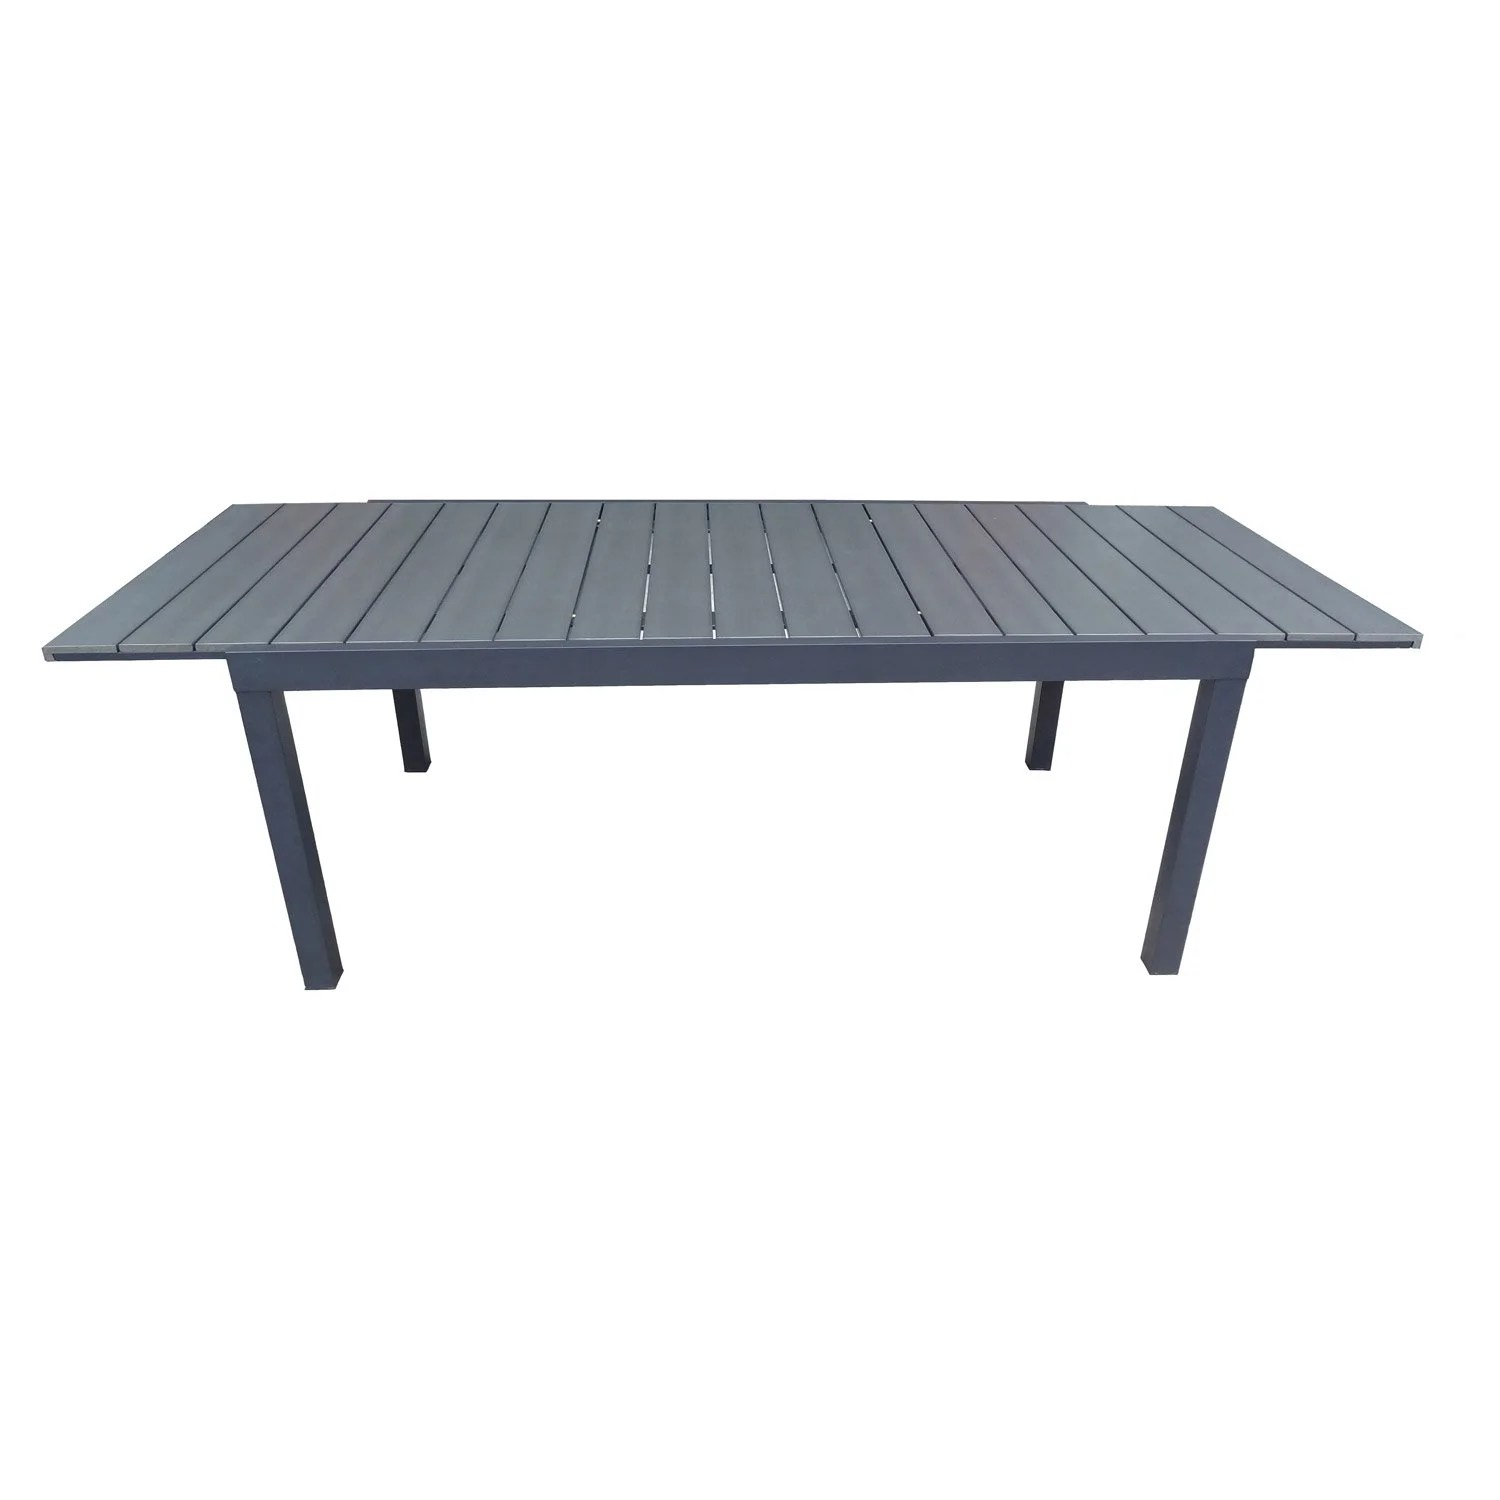 Table Fer Jardin Table De Jardin Naterial Pratt Rectangulaire Gris Leroy